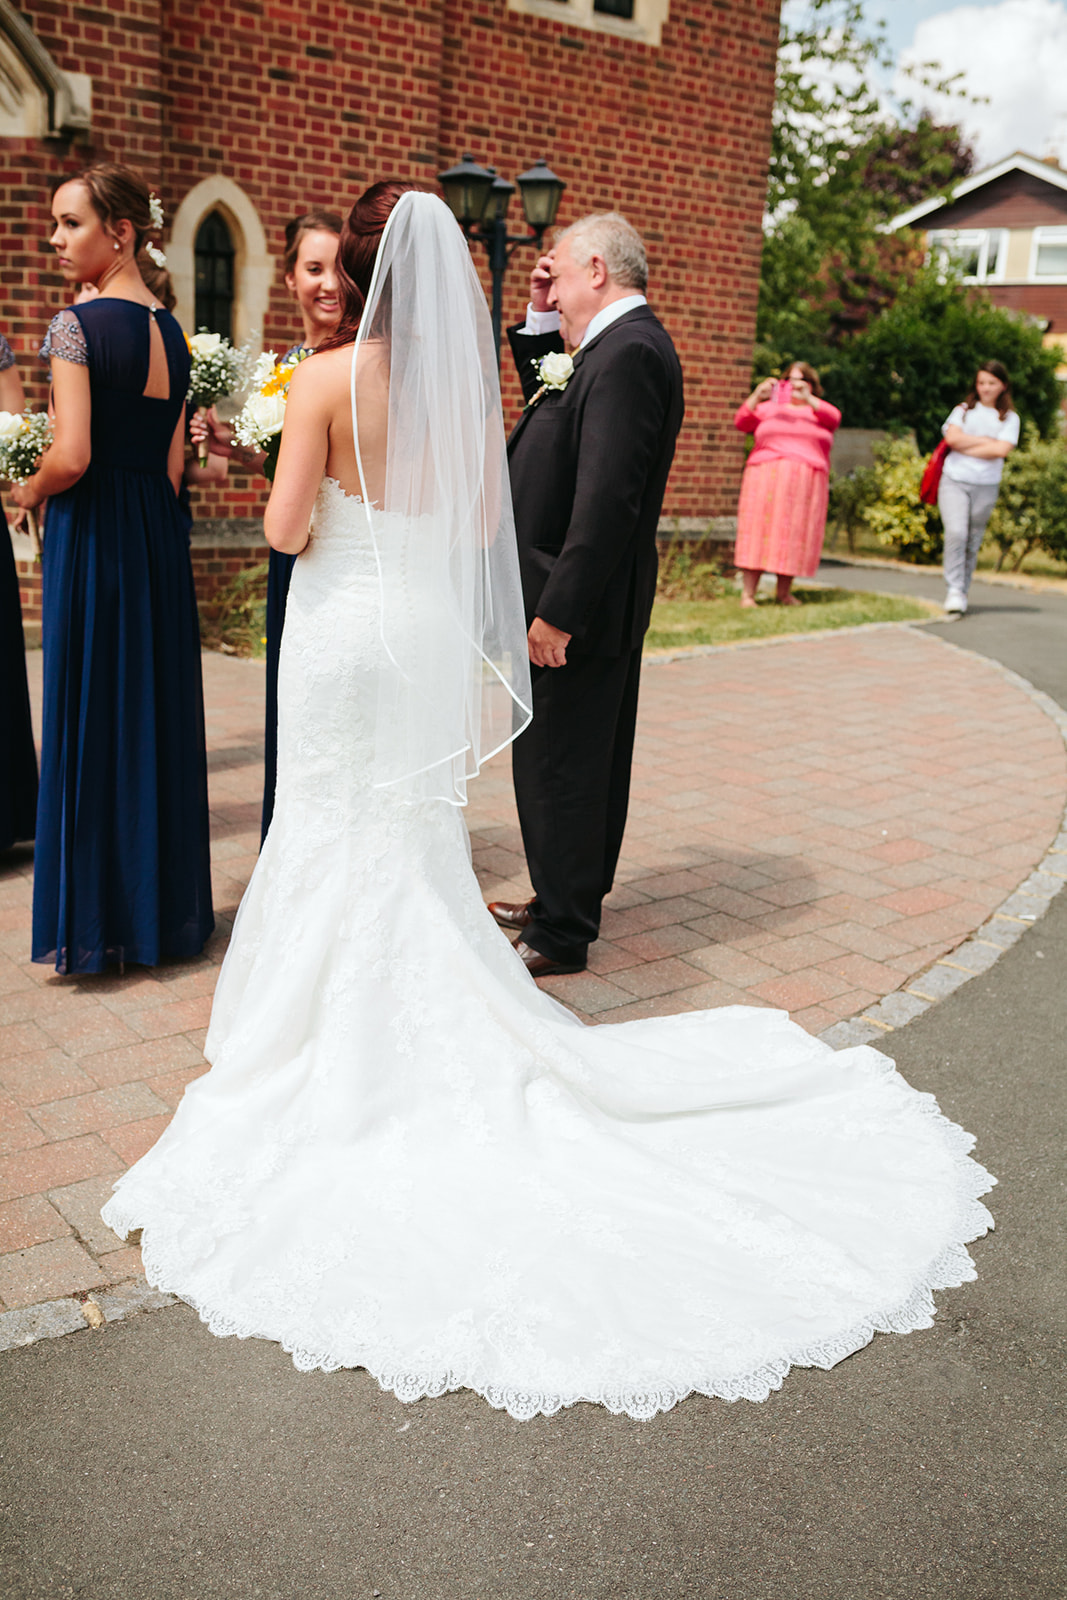 staunton wedfest festival bride to be